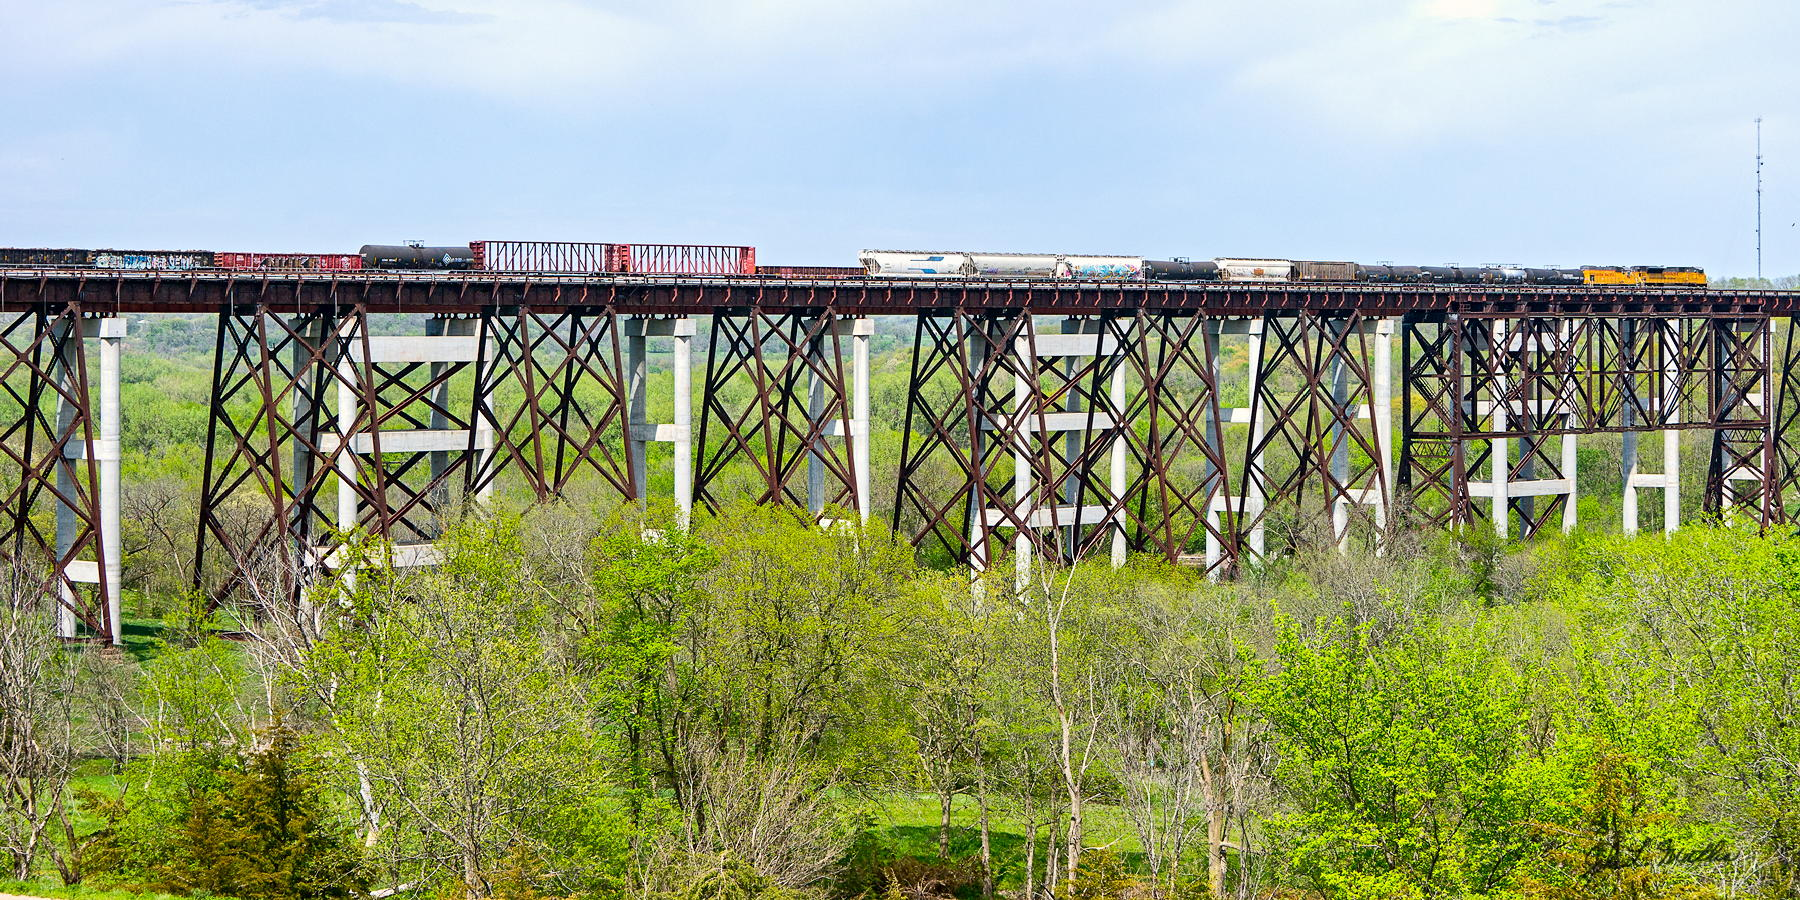 UP 3507 and UPY 704 cross the new Kate Shelly bridge on May 15, 2013.